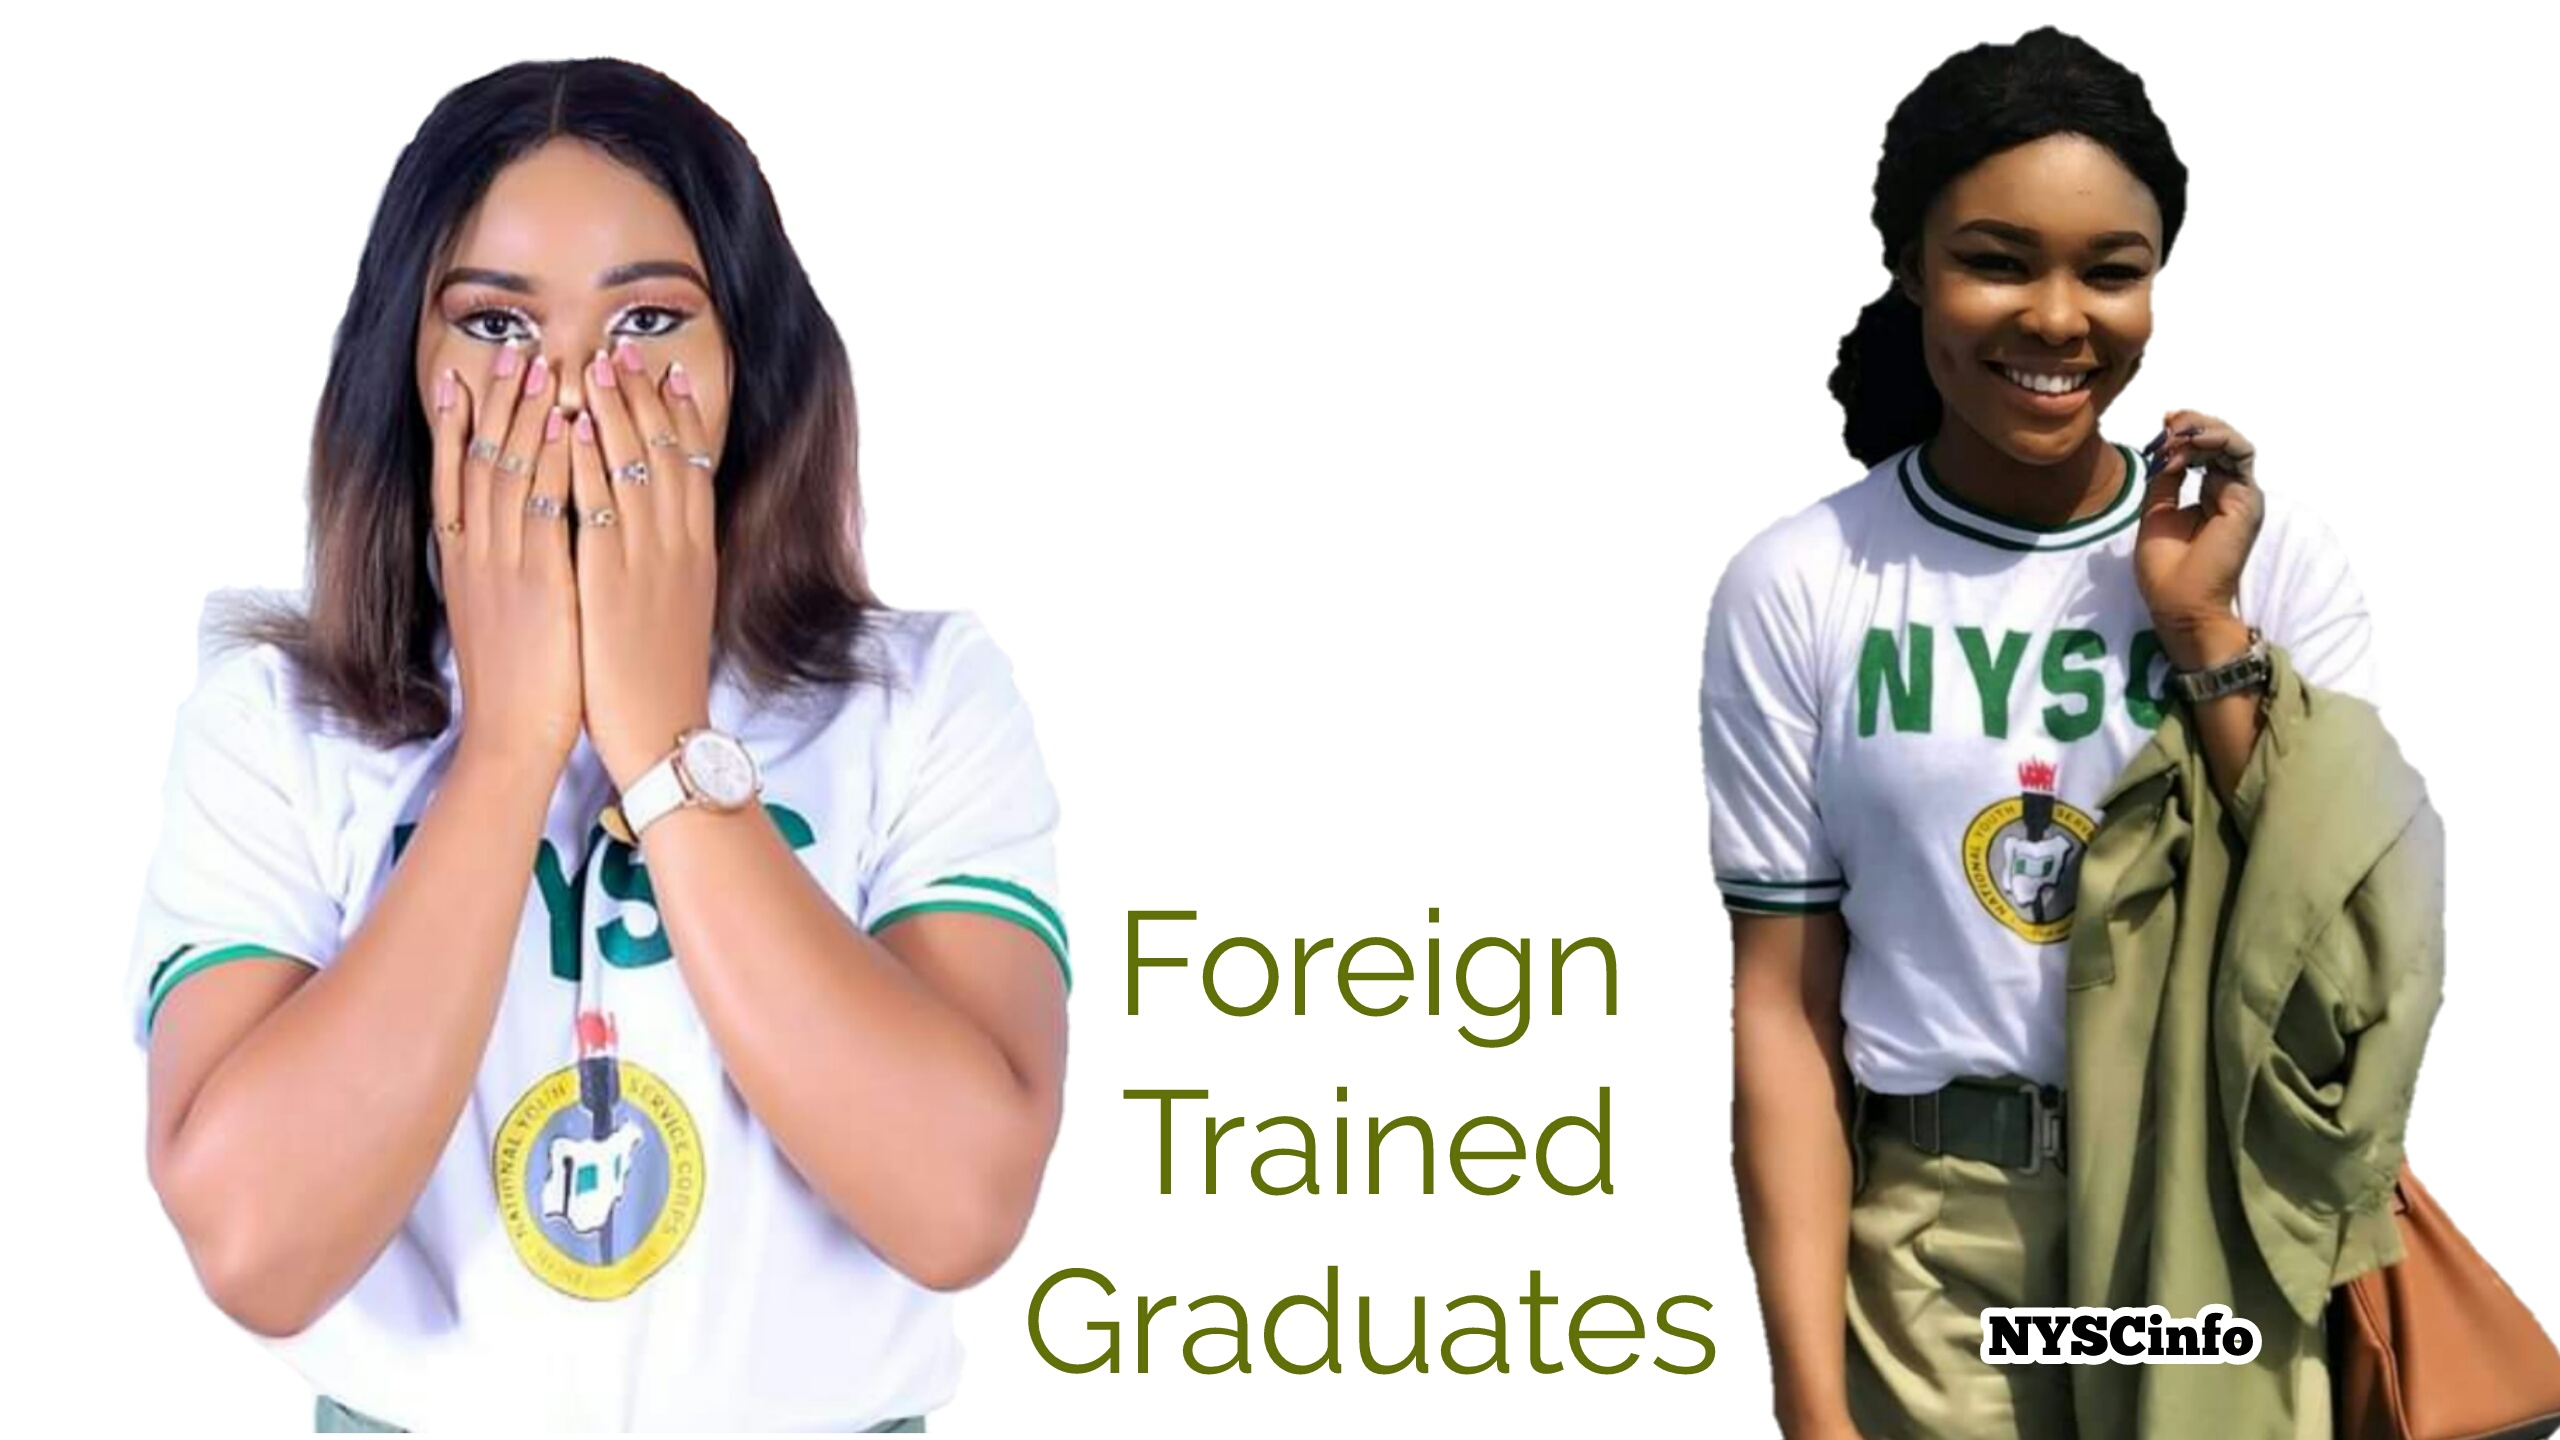 NYSC Certificate Verification for Foreign Graduates